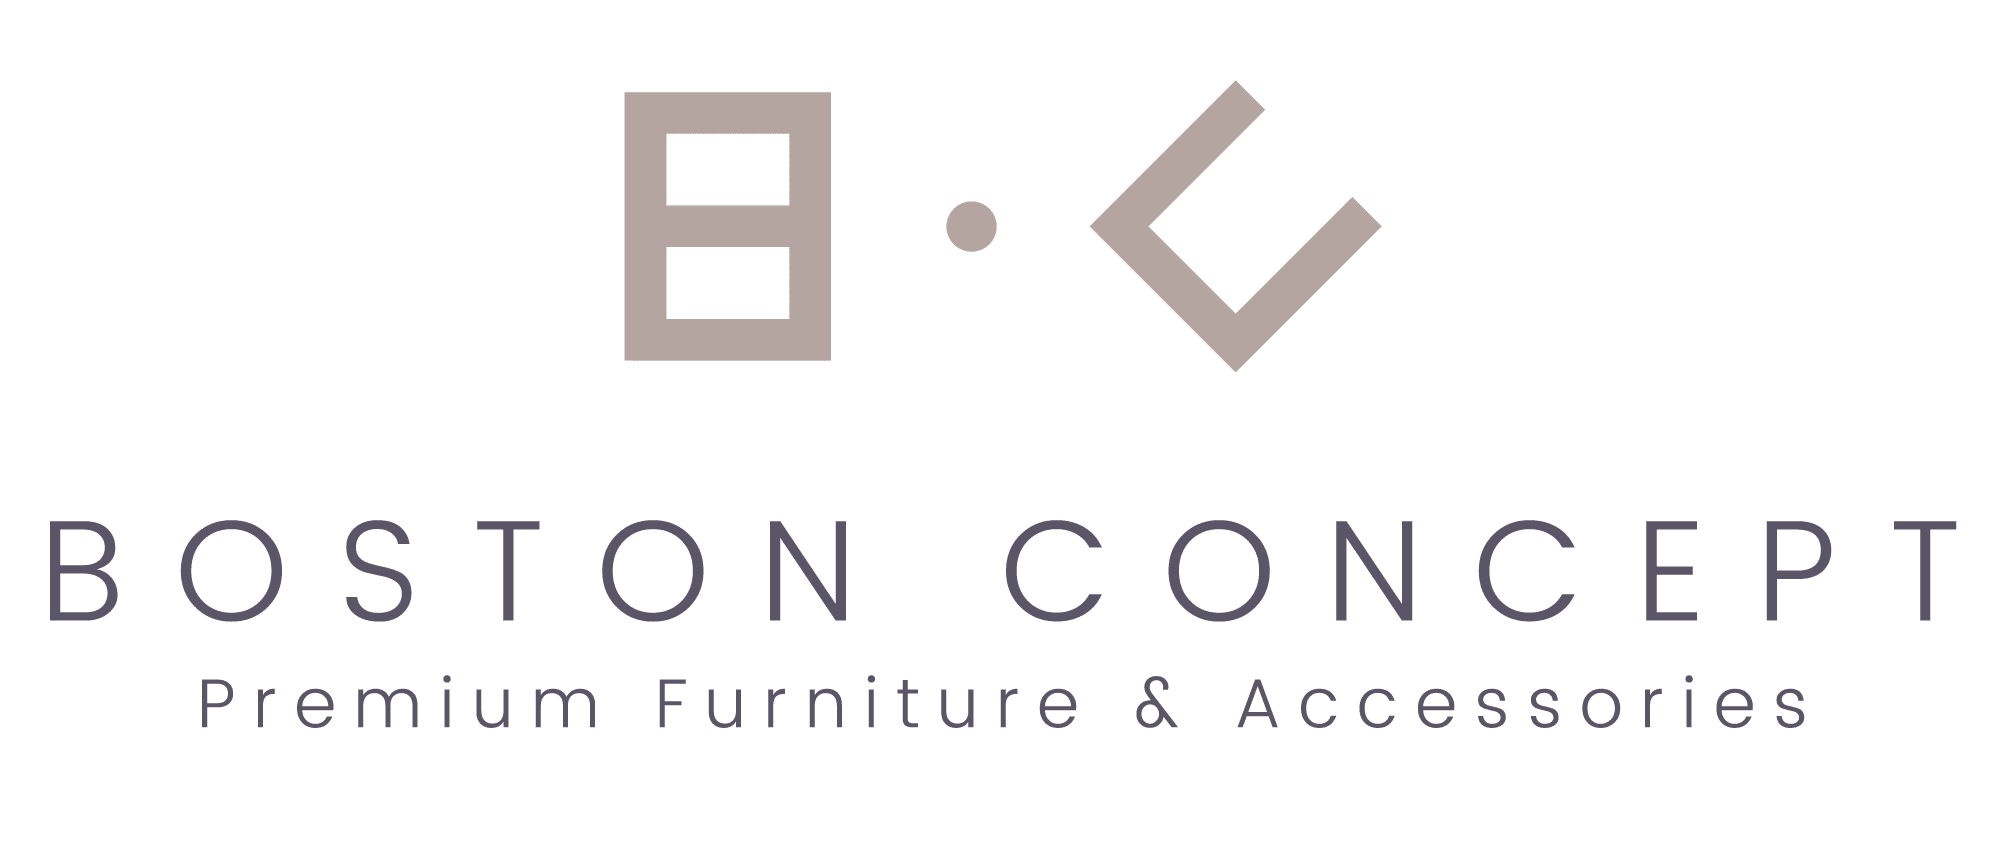 Boston Concept - Premium Furniture & Accessories